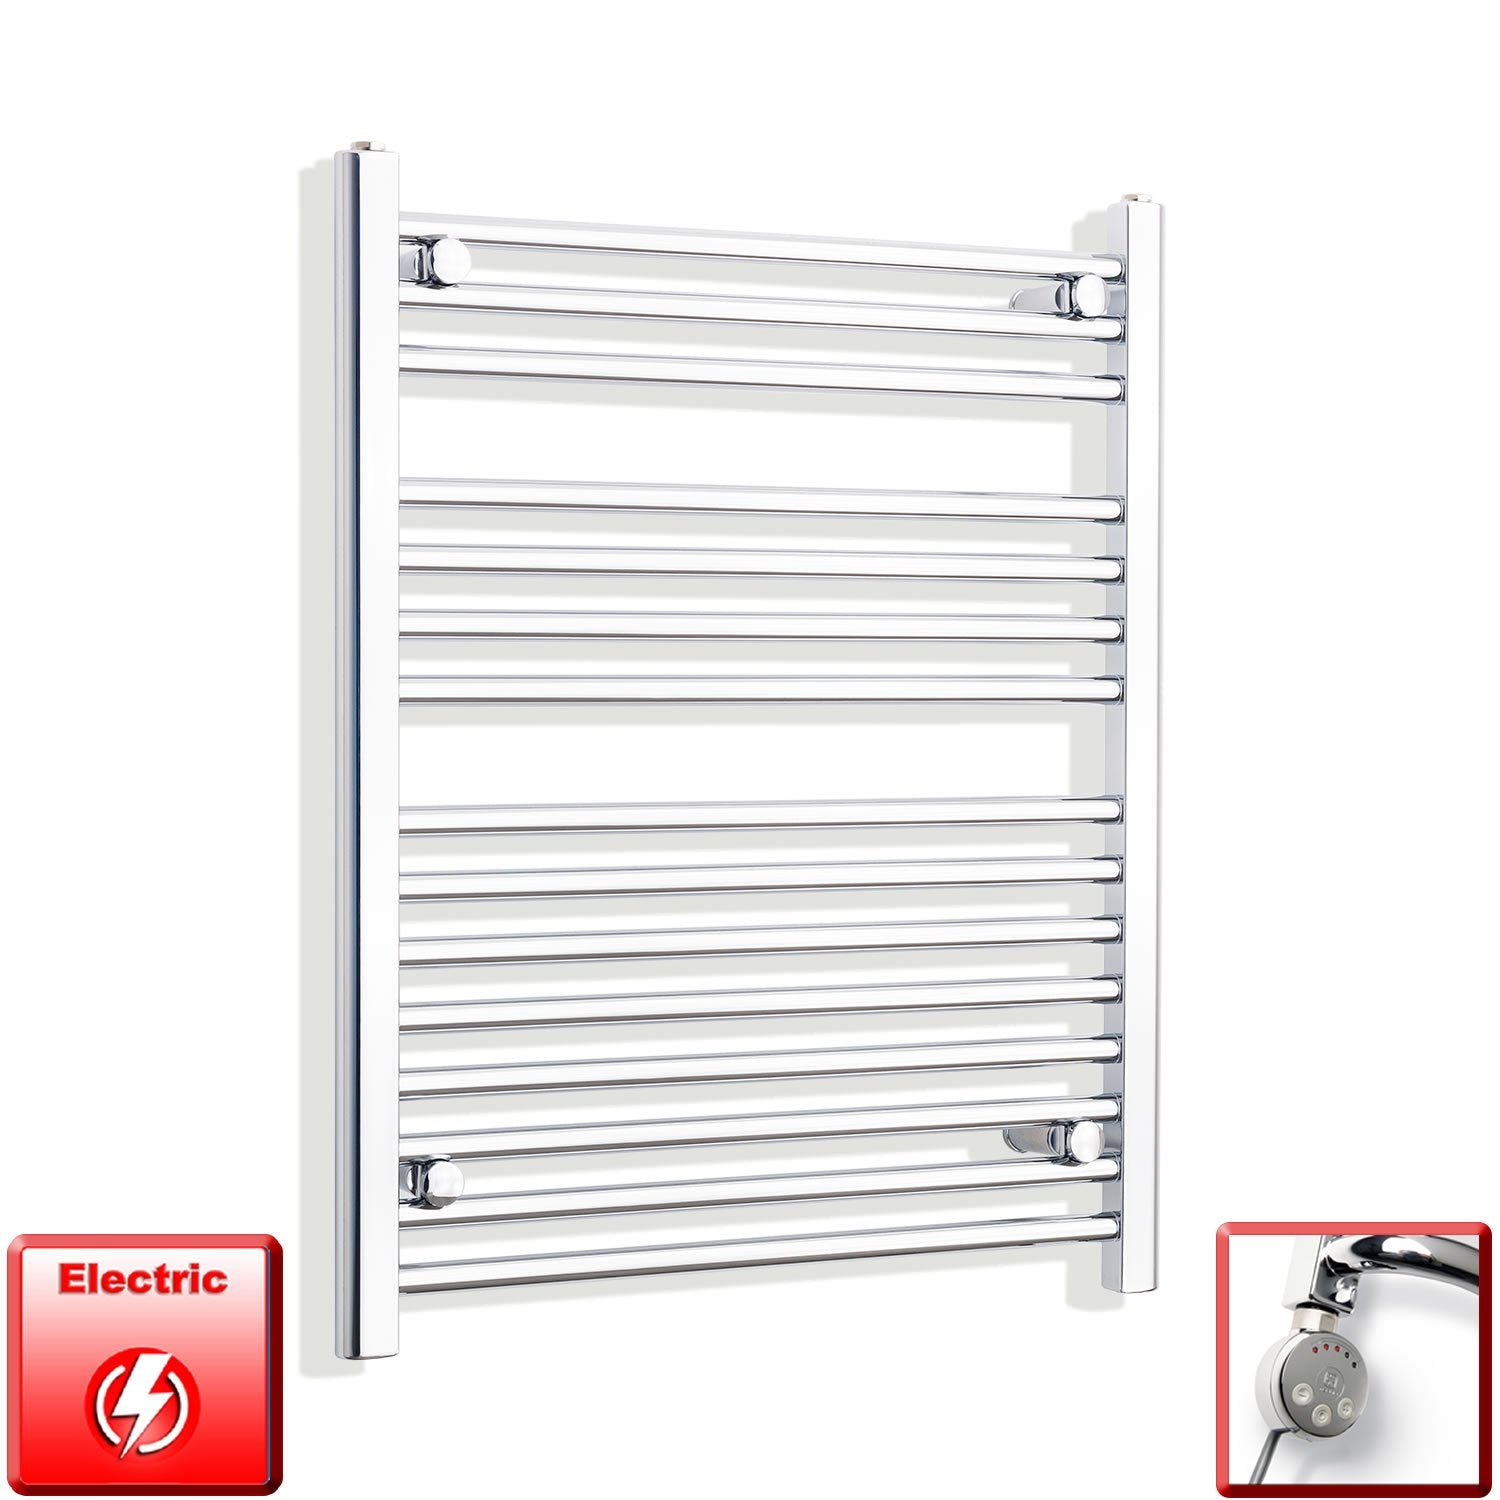 700mm Wide 800mm High Flat Or Curved Chrome Pre-Filled Electric Heated Towel Rail Radiator HTR,MEG Thermostatic Element / Straight